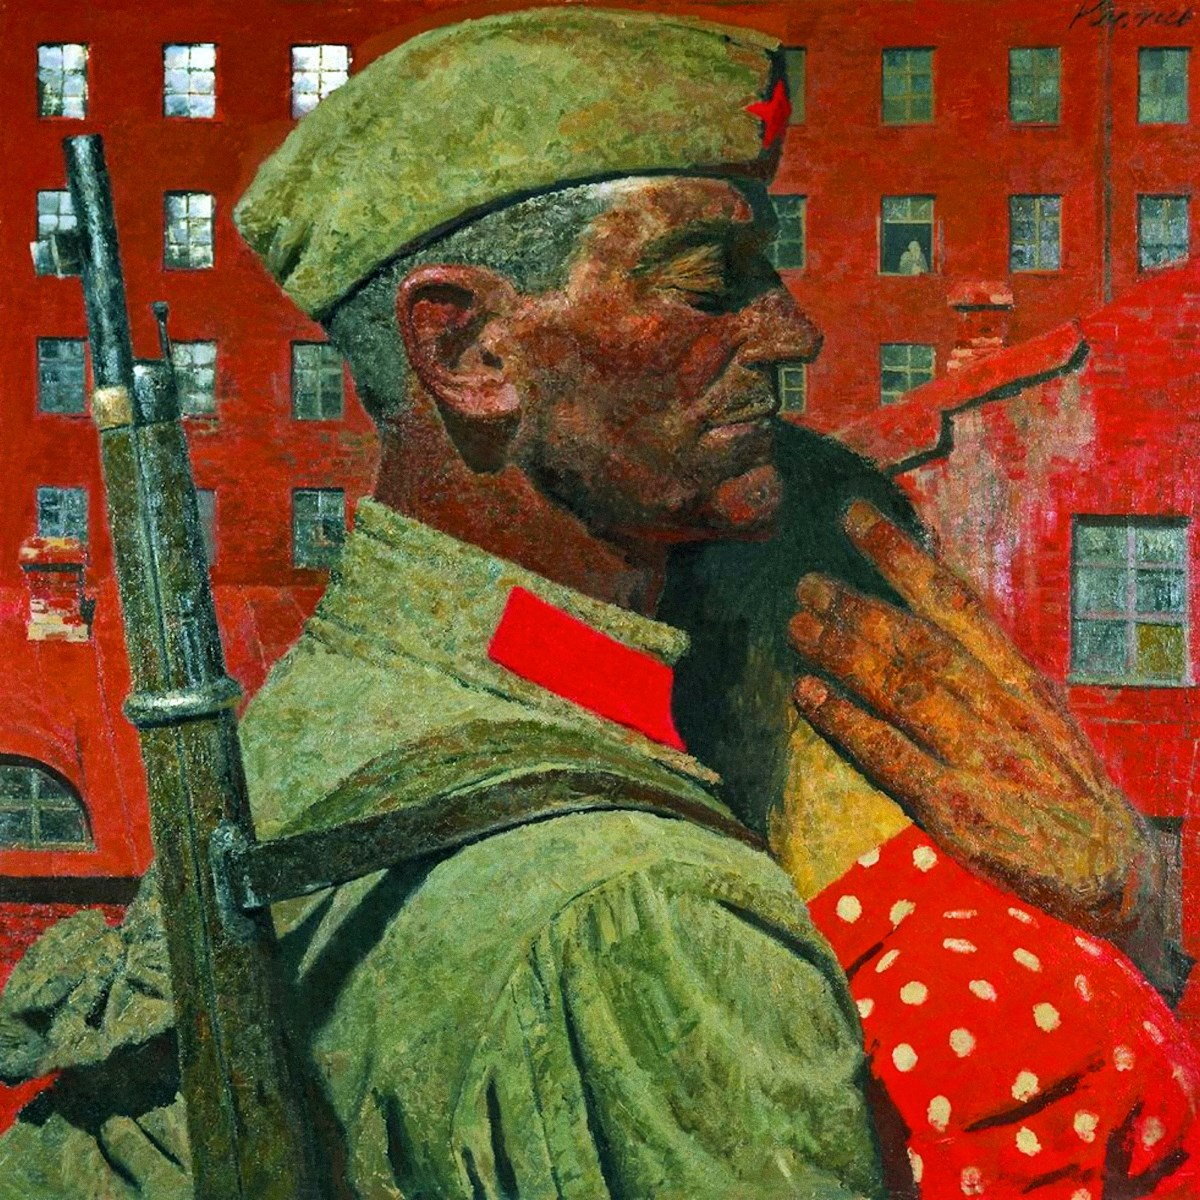 00 Gely Korzhev-Chuvelyov. Farewell, from 'Scorched By the Fires of War'. 1967